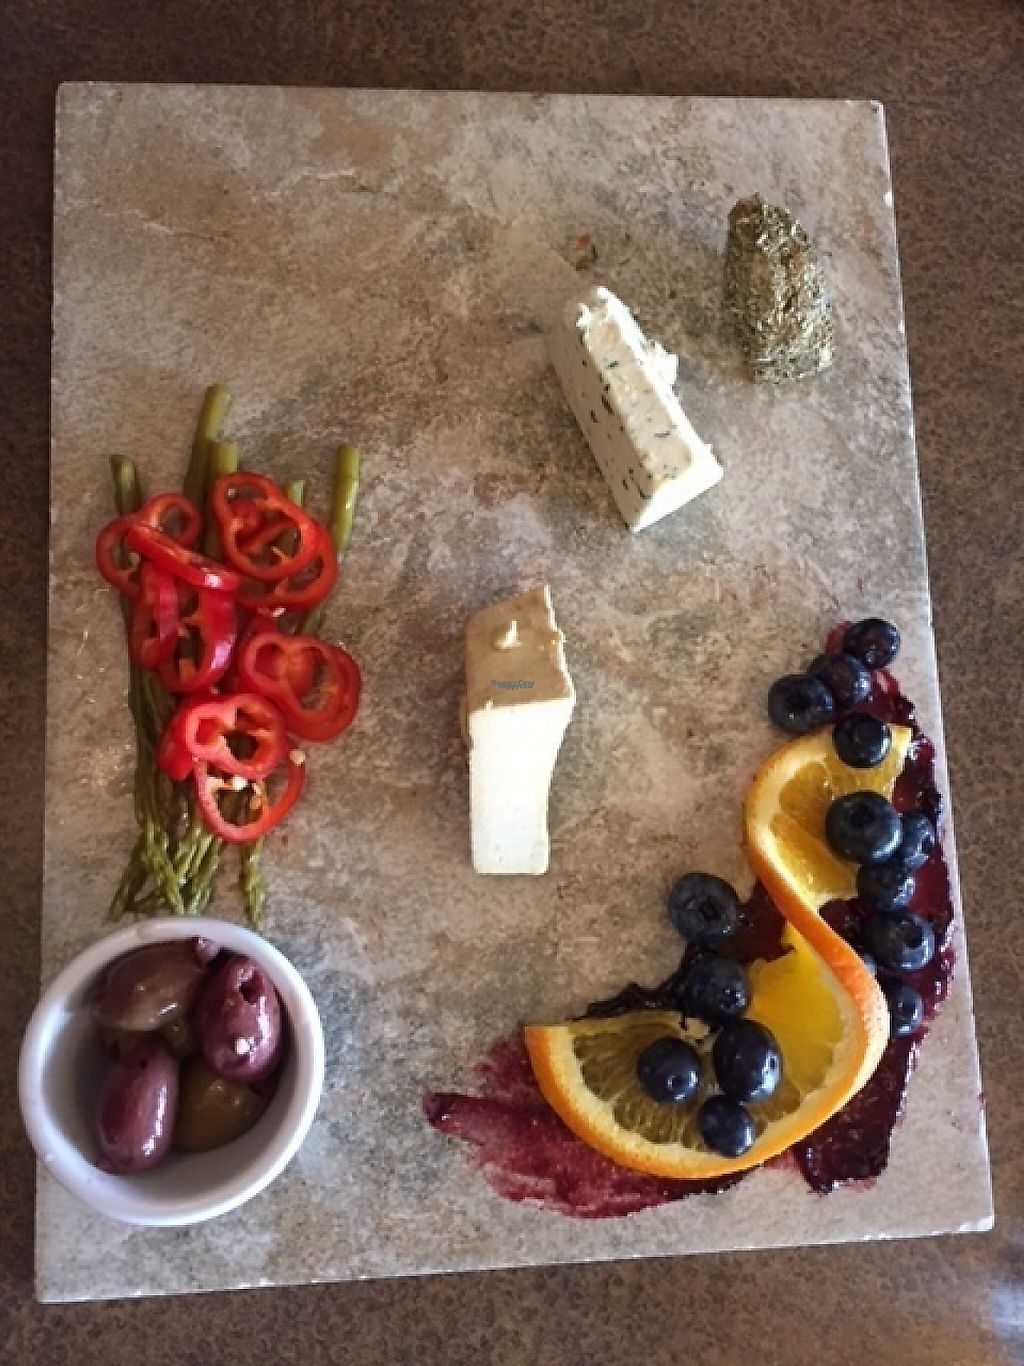 """Photo of Vtopia Cheese Shop and Deli  by <a href=""""/members/profile/veggiewoman"""">veggiewoman</a> <br/>Vegan cheese platter at Vtopia.   <br/> March 13, 2017  - <a href='/contact/abuse/image/59803/235931'>Report</a>"""